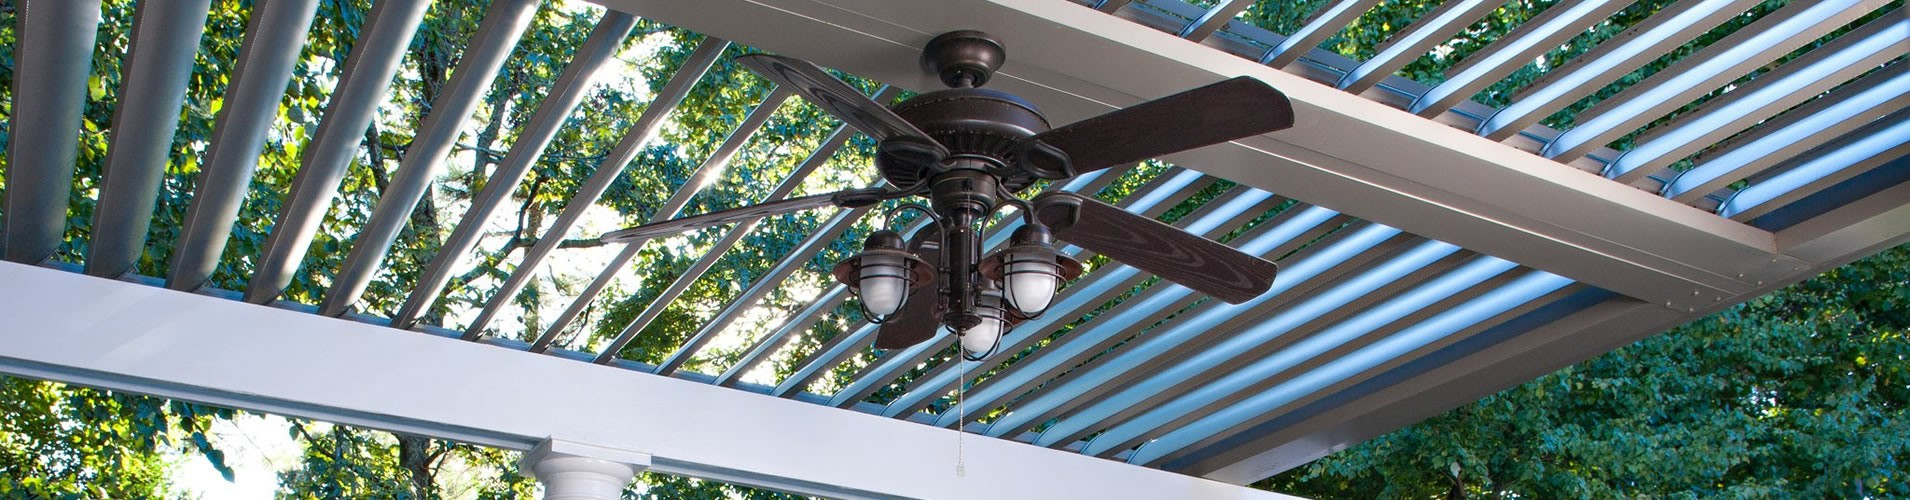 Patio Covers Louvered Roof Dallas